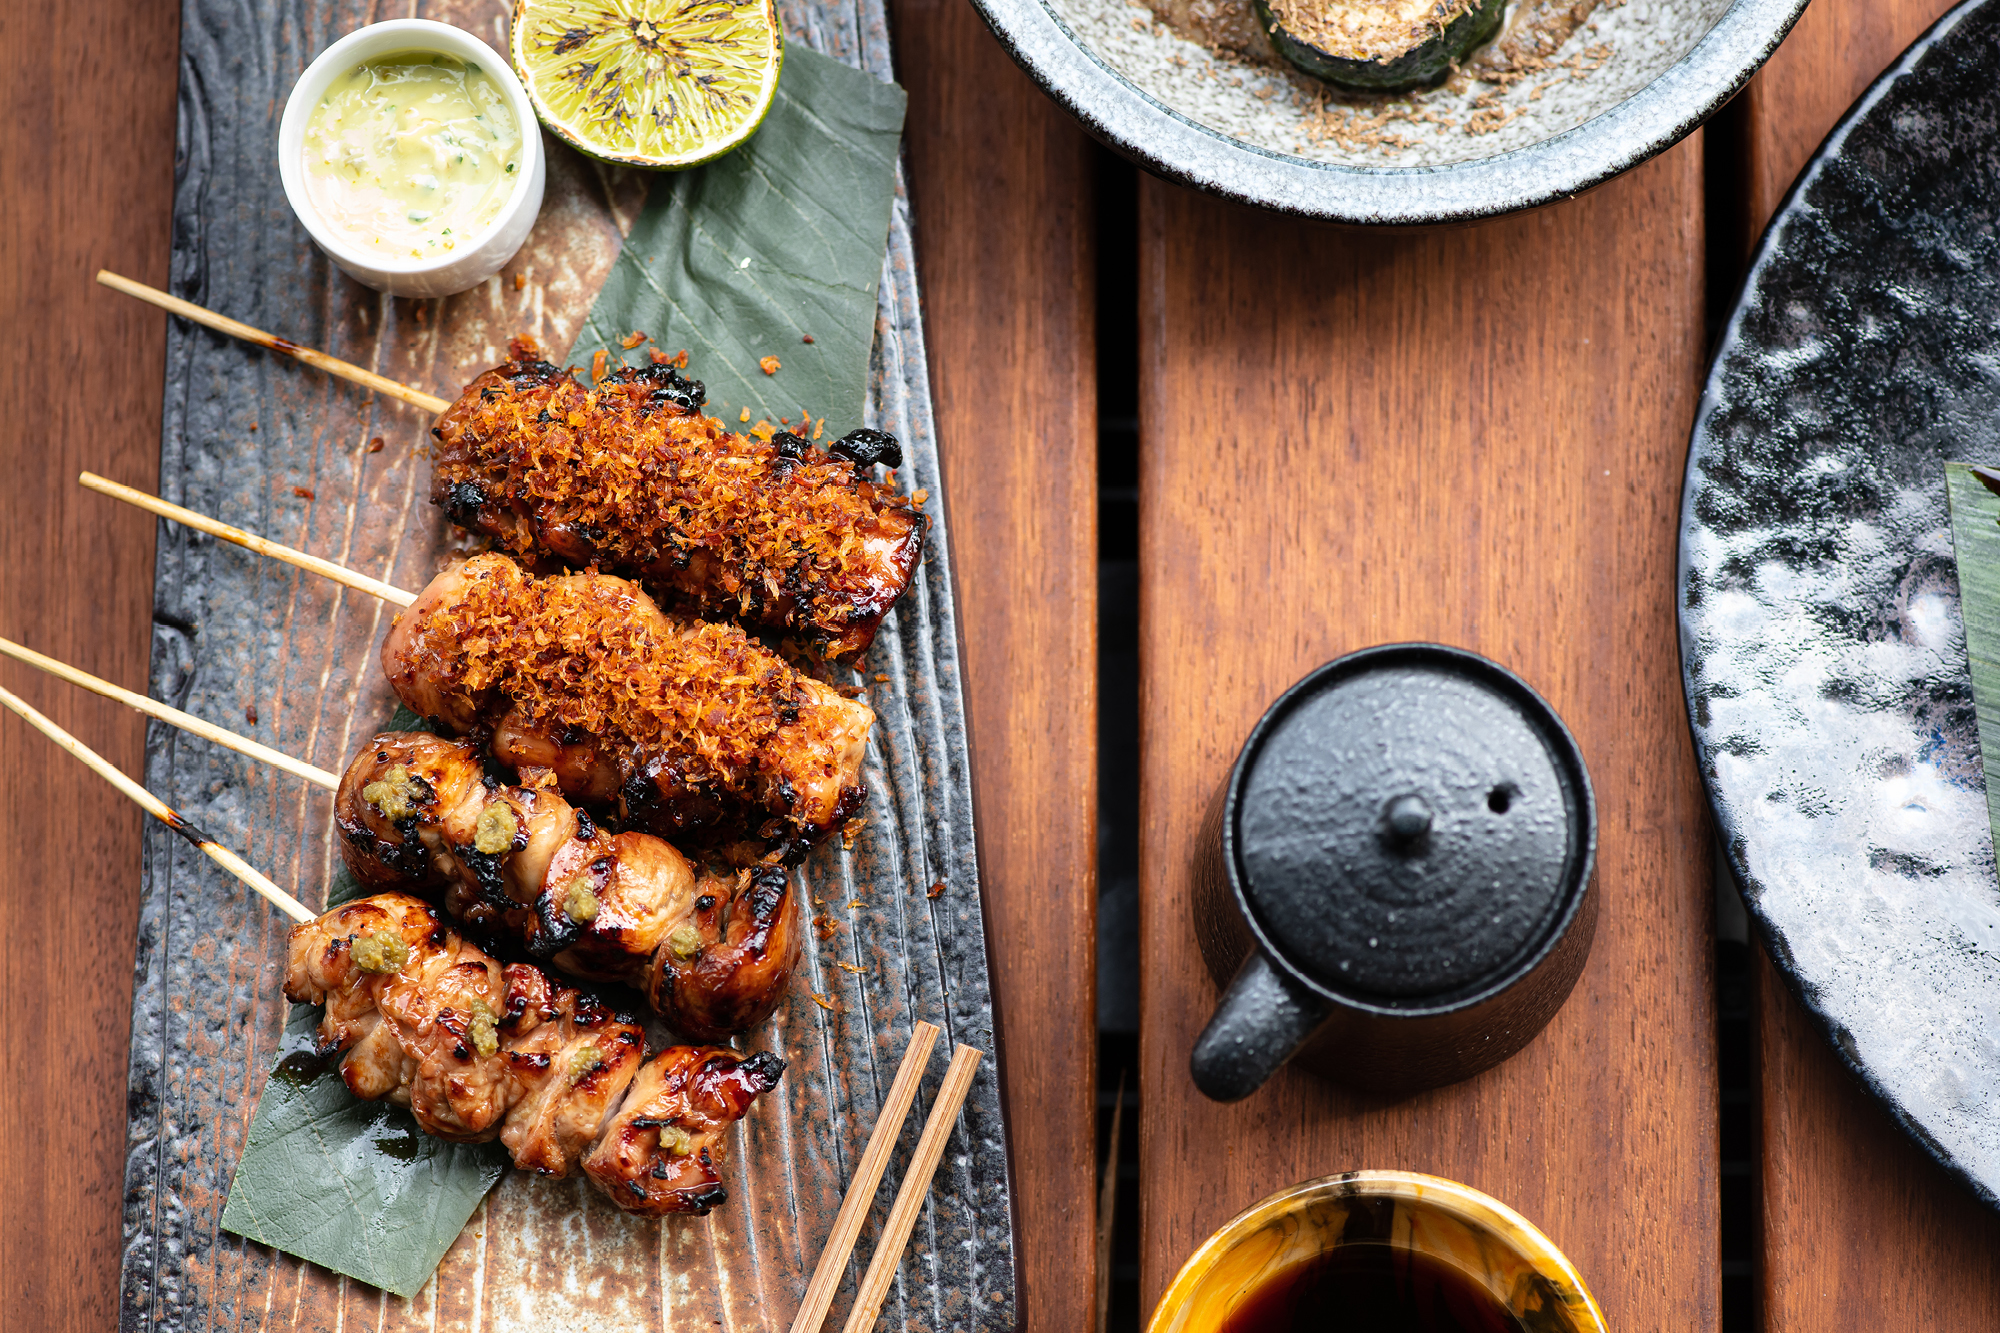 Taka Marylebone features a menu of small plates, grills and sushi